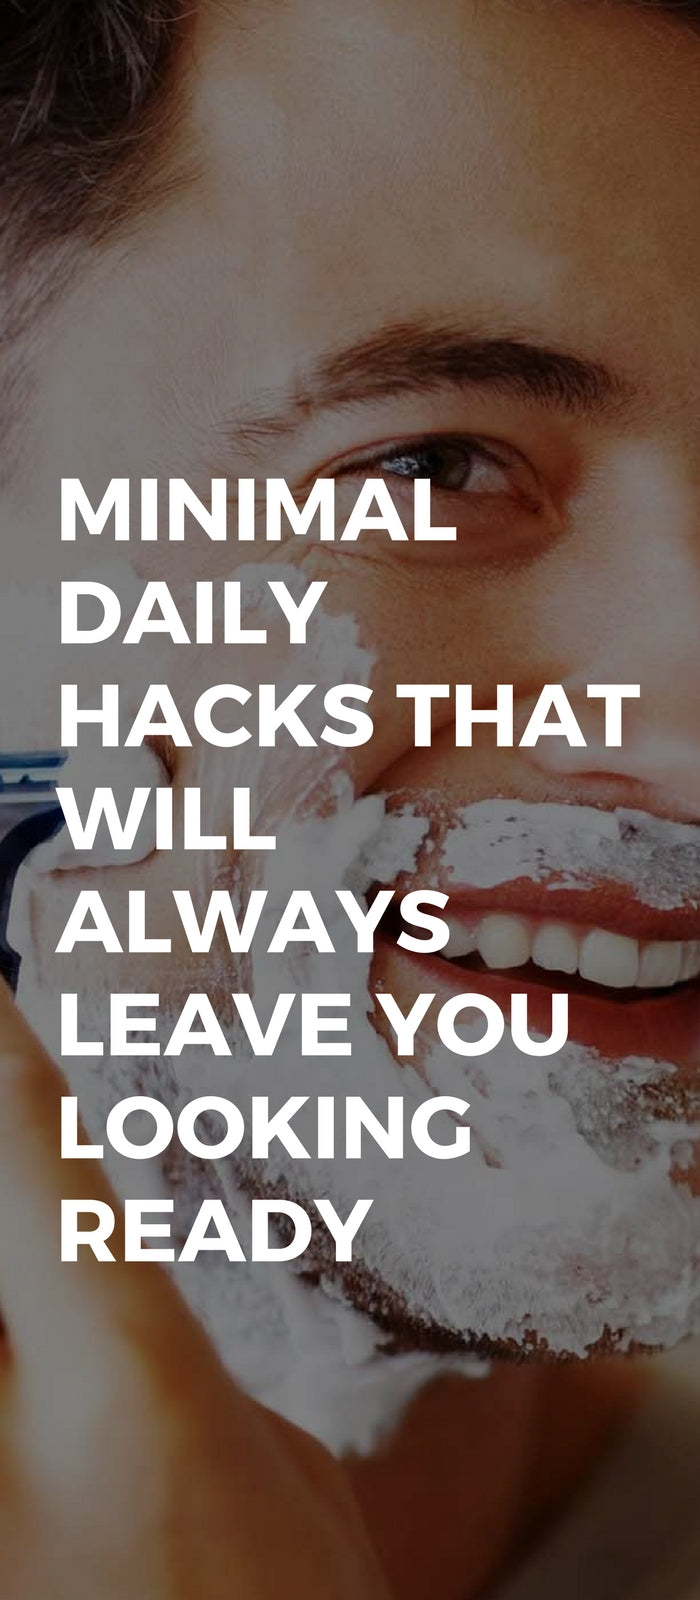 Minimal Daily Hacks That Will Always Leave You Looking Ready